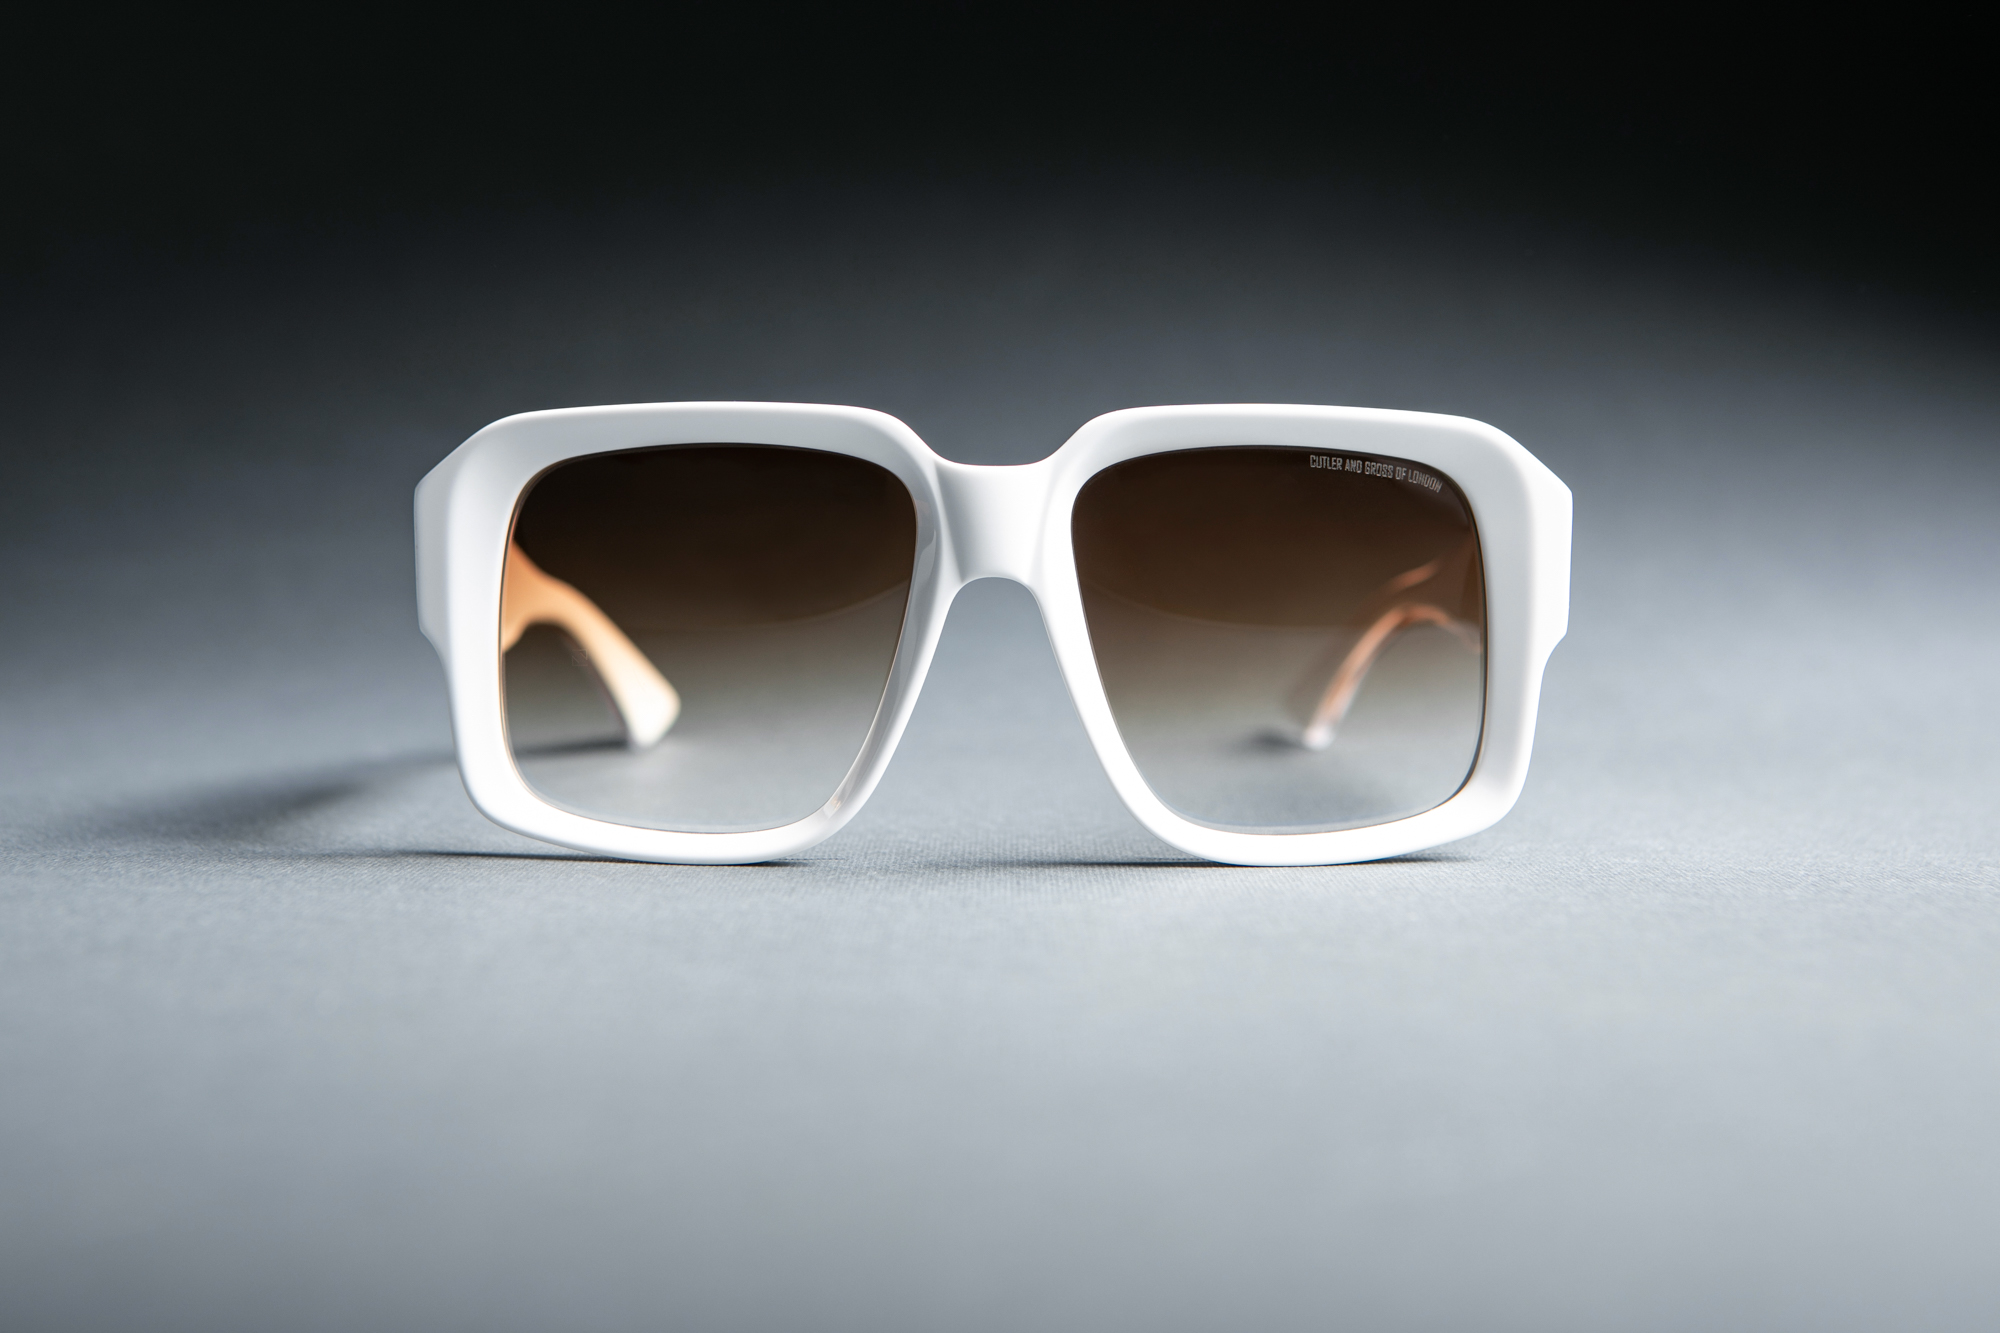 CUTLER AND GROSS LAUNCHES NEW LIMITED-EDITION SUNGLASS FOR SUMMER 2021